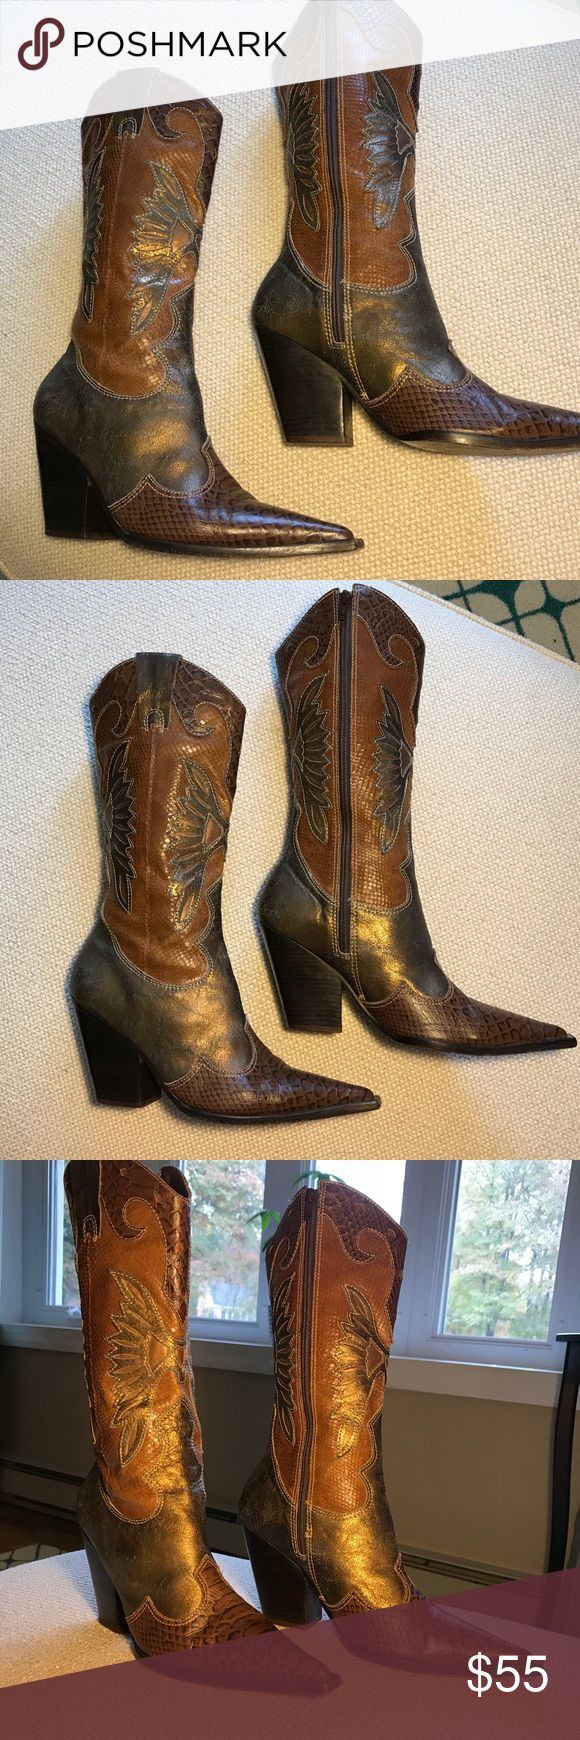 Para Raio leather cowboy boots Para Raio leather cowboy boots. Made in Brazil. Shades of gold, copper, brown.  Some normal signs of wear but they just add to the distressed look. No major flaws. Pointed toe and chunky heel. Size 9M. Para Raio Shoes Heeled Boots